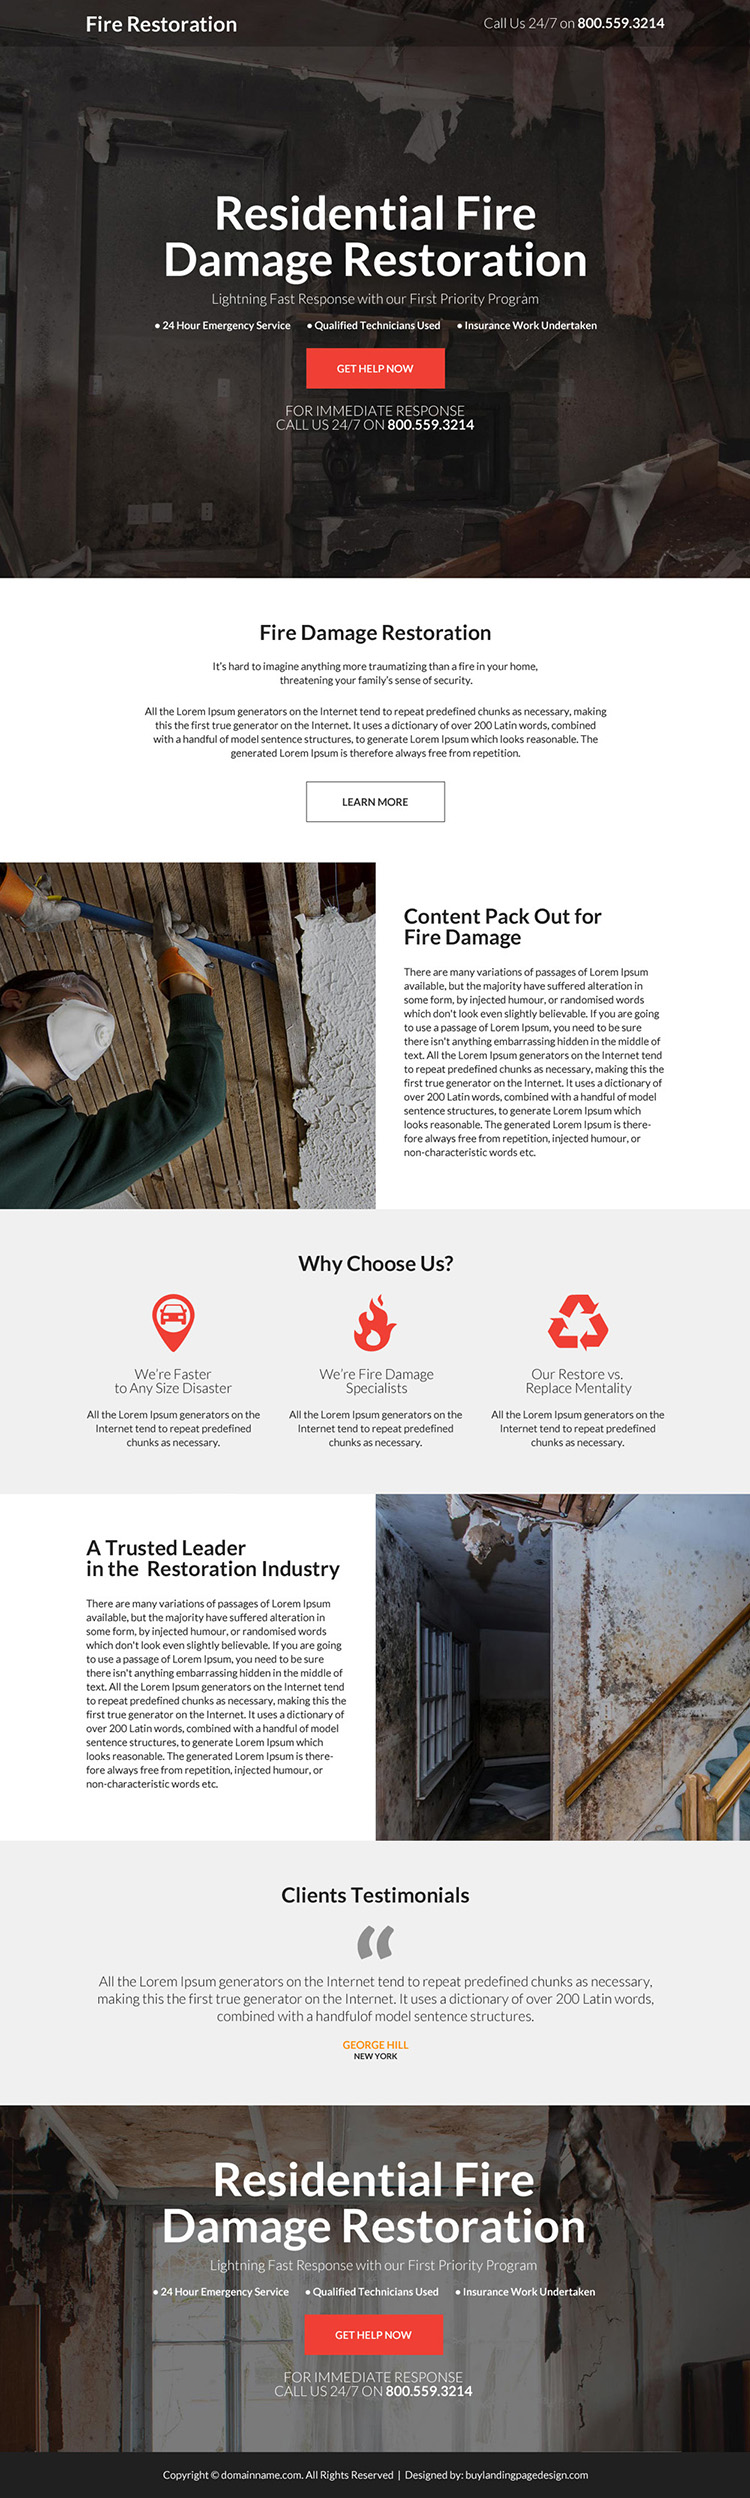 residential fire damage restoration responsive landing page